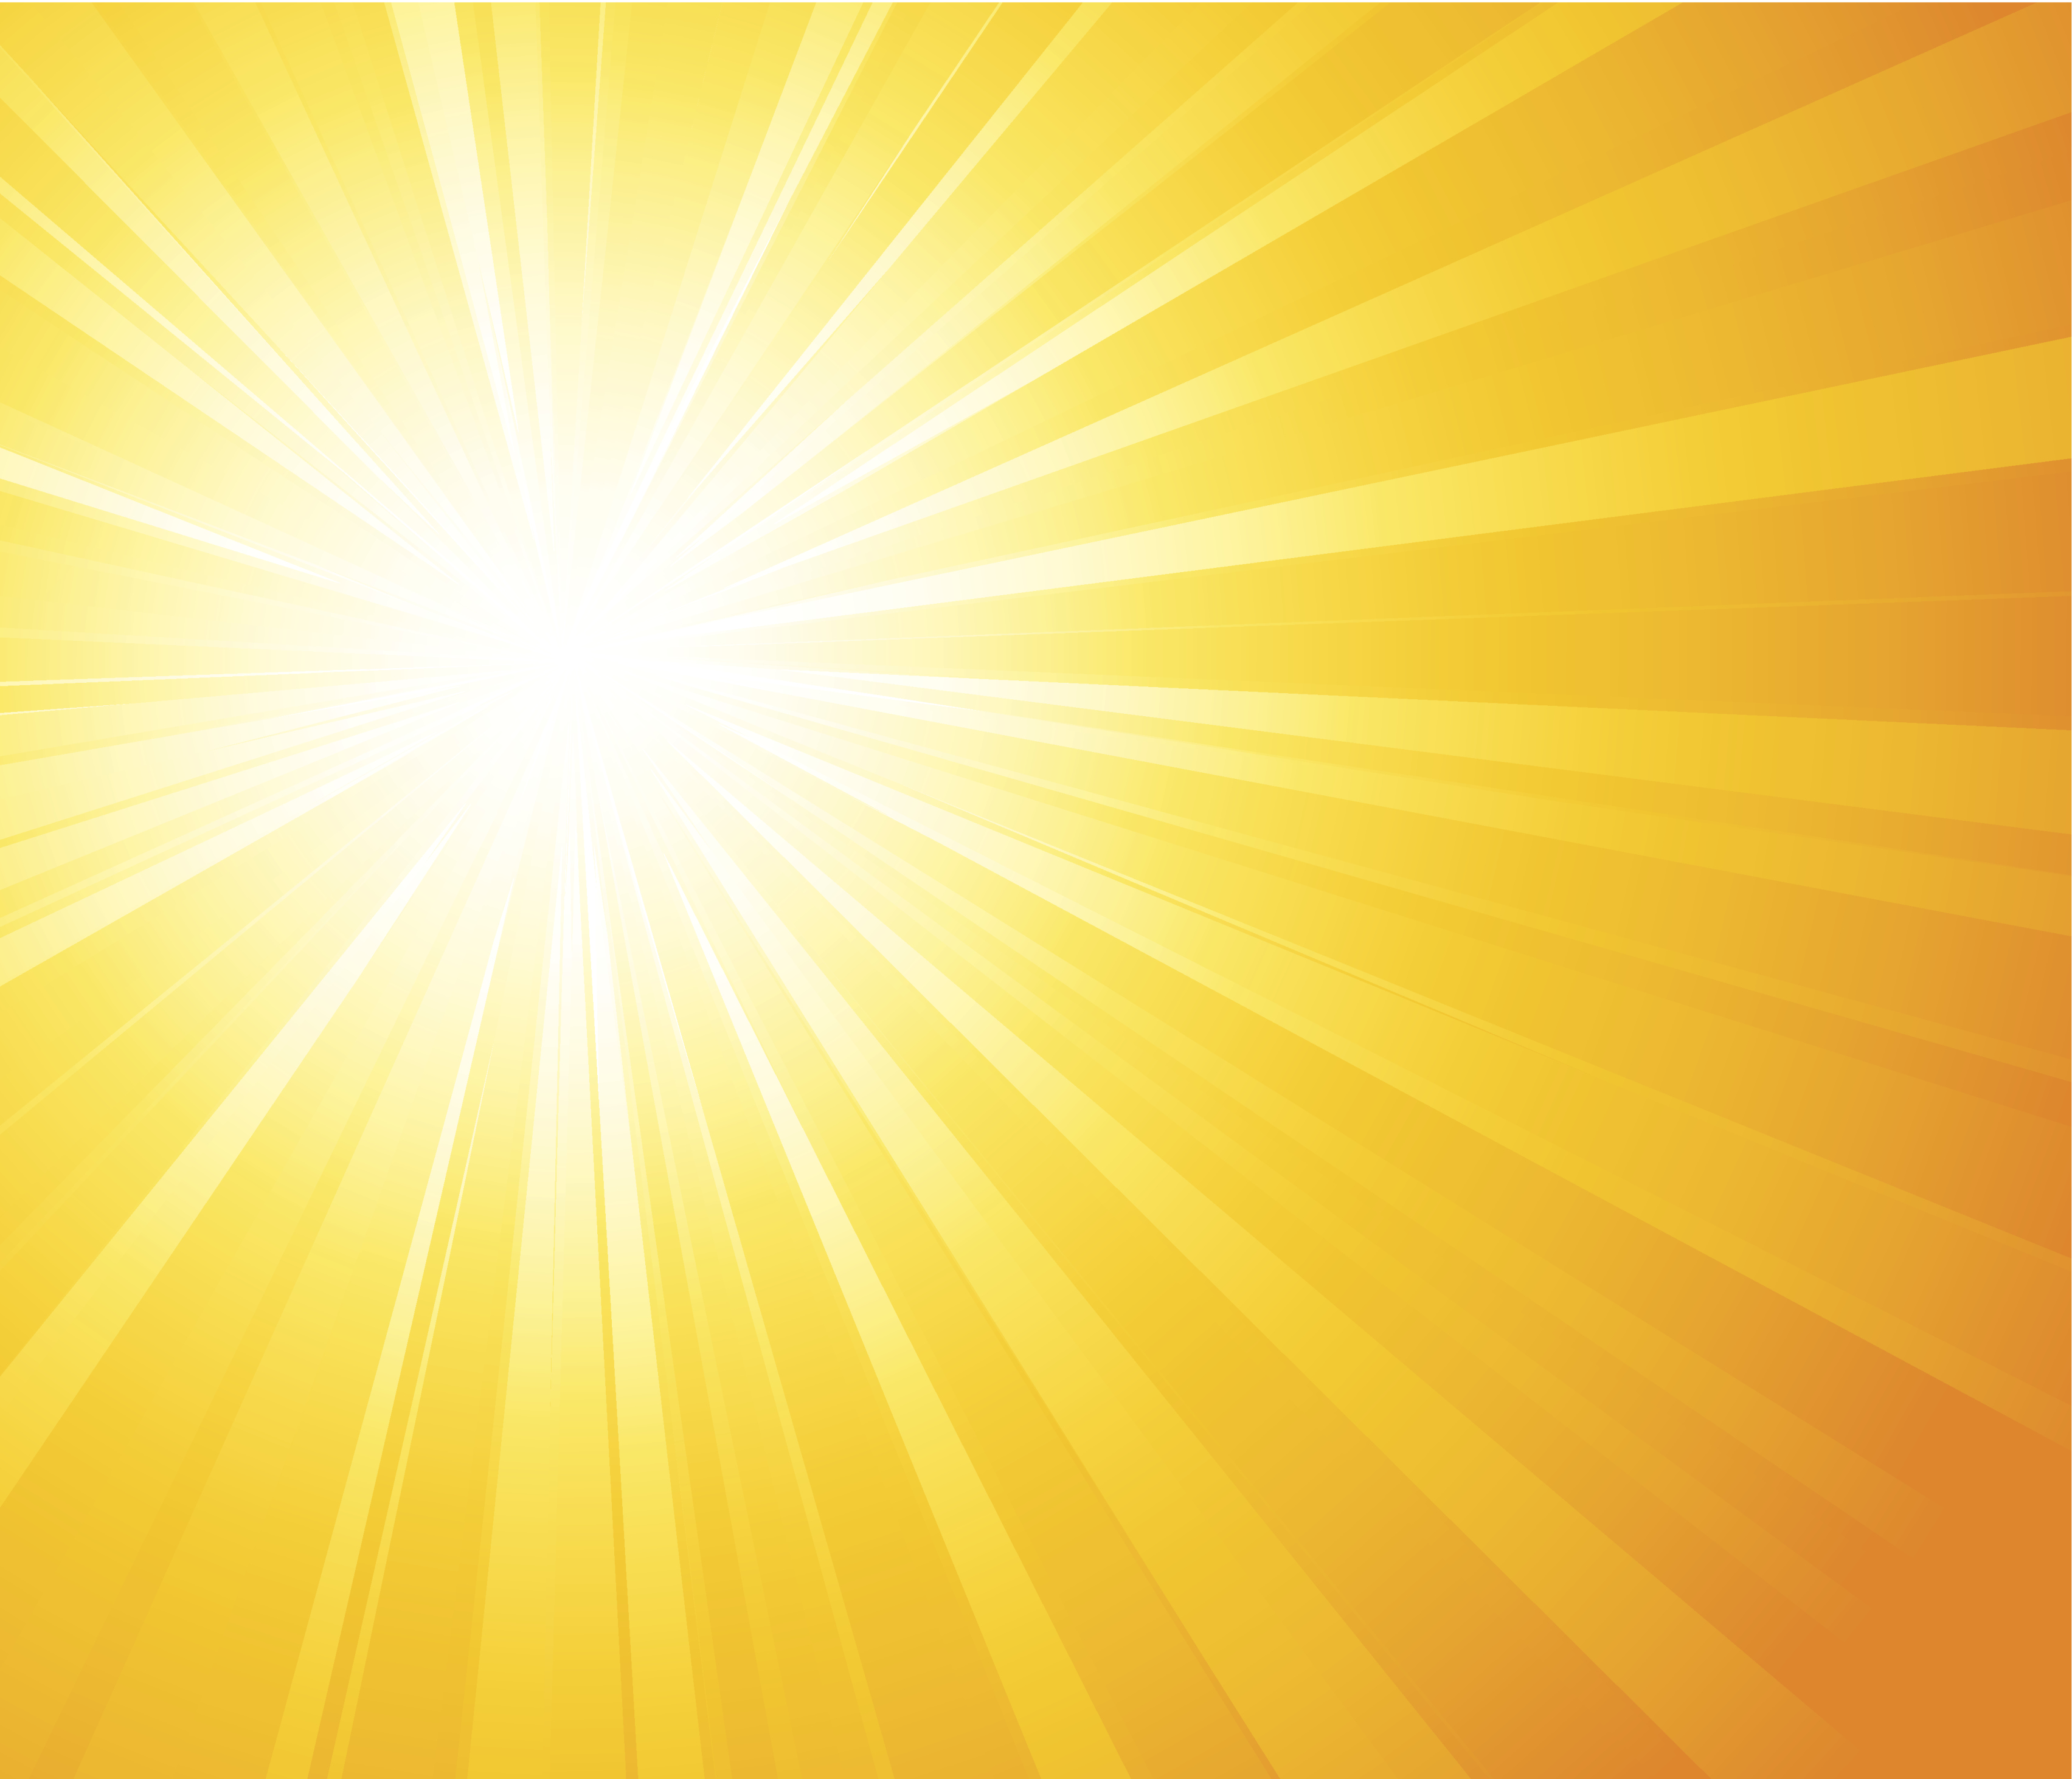 sun rays background hd - Clip Art Library (3407 x 2926 Pixel)